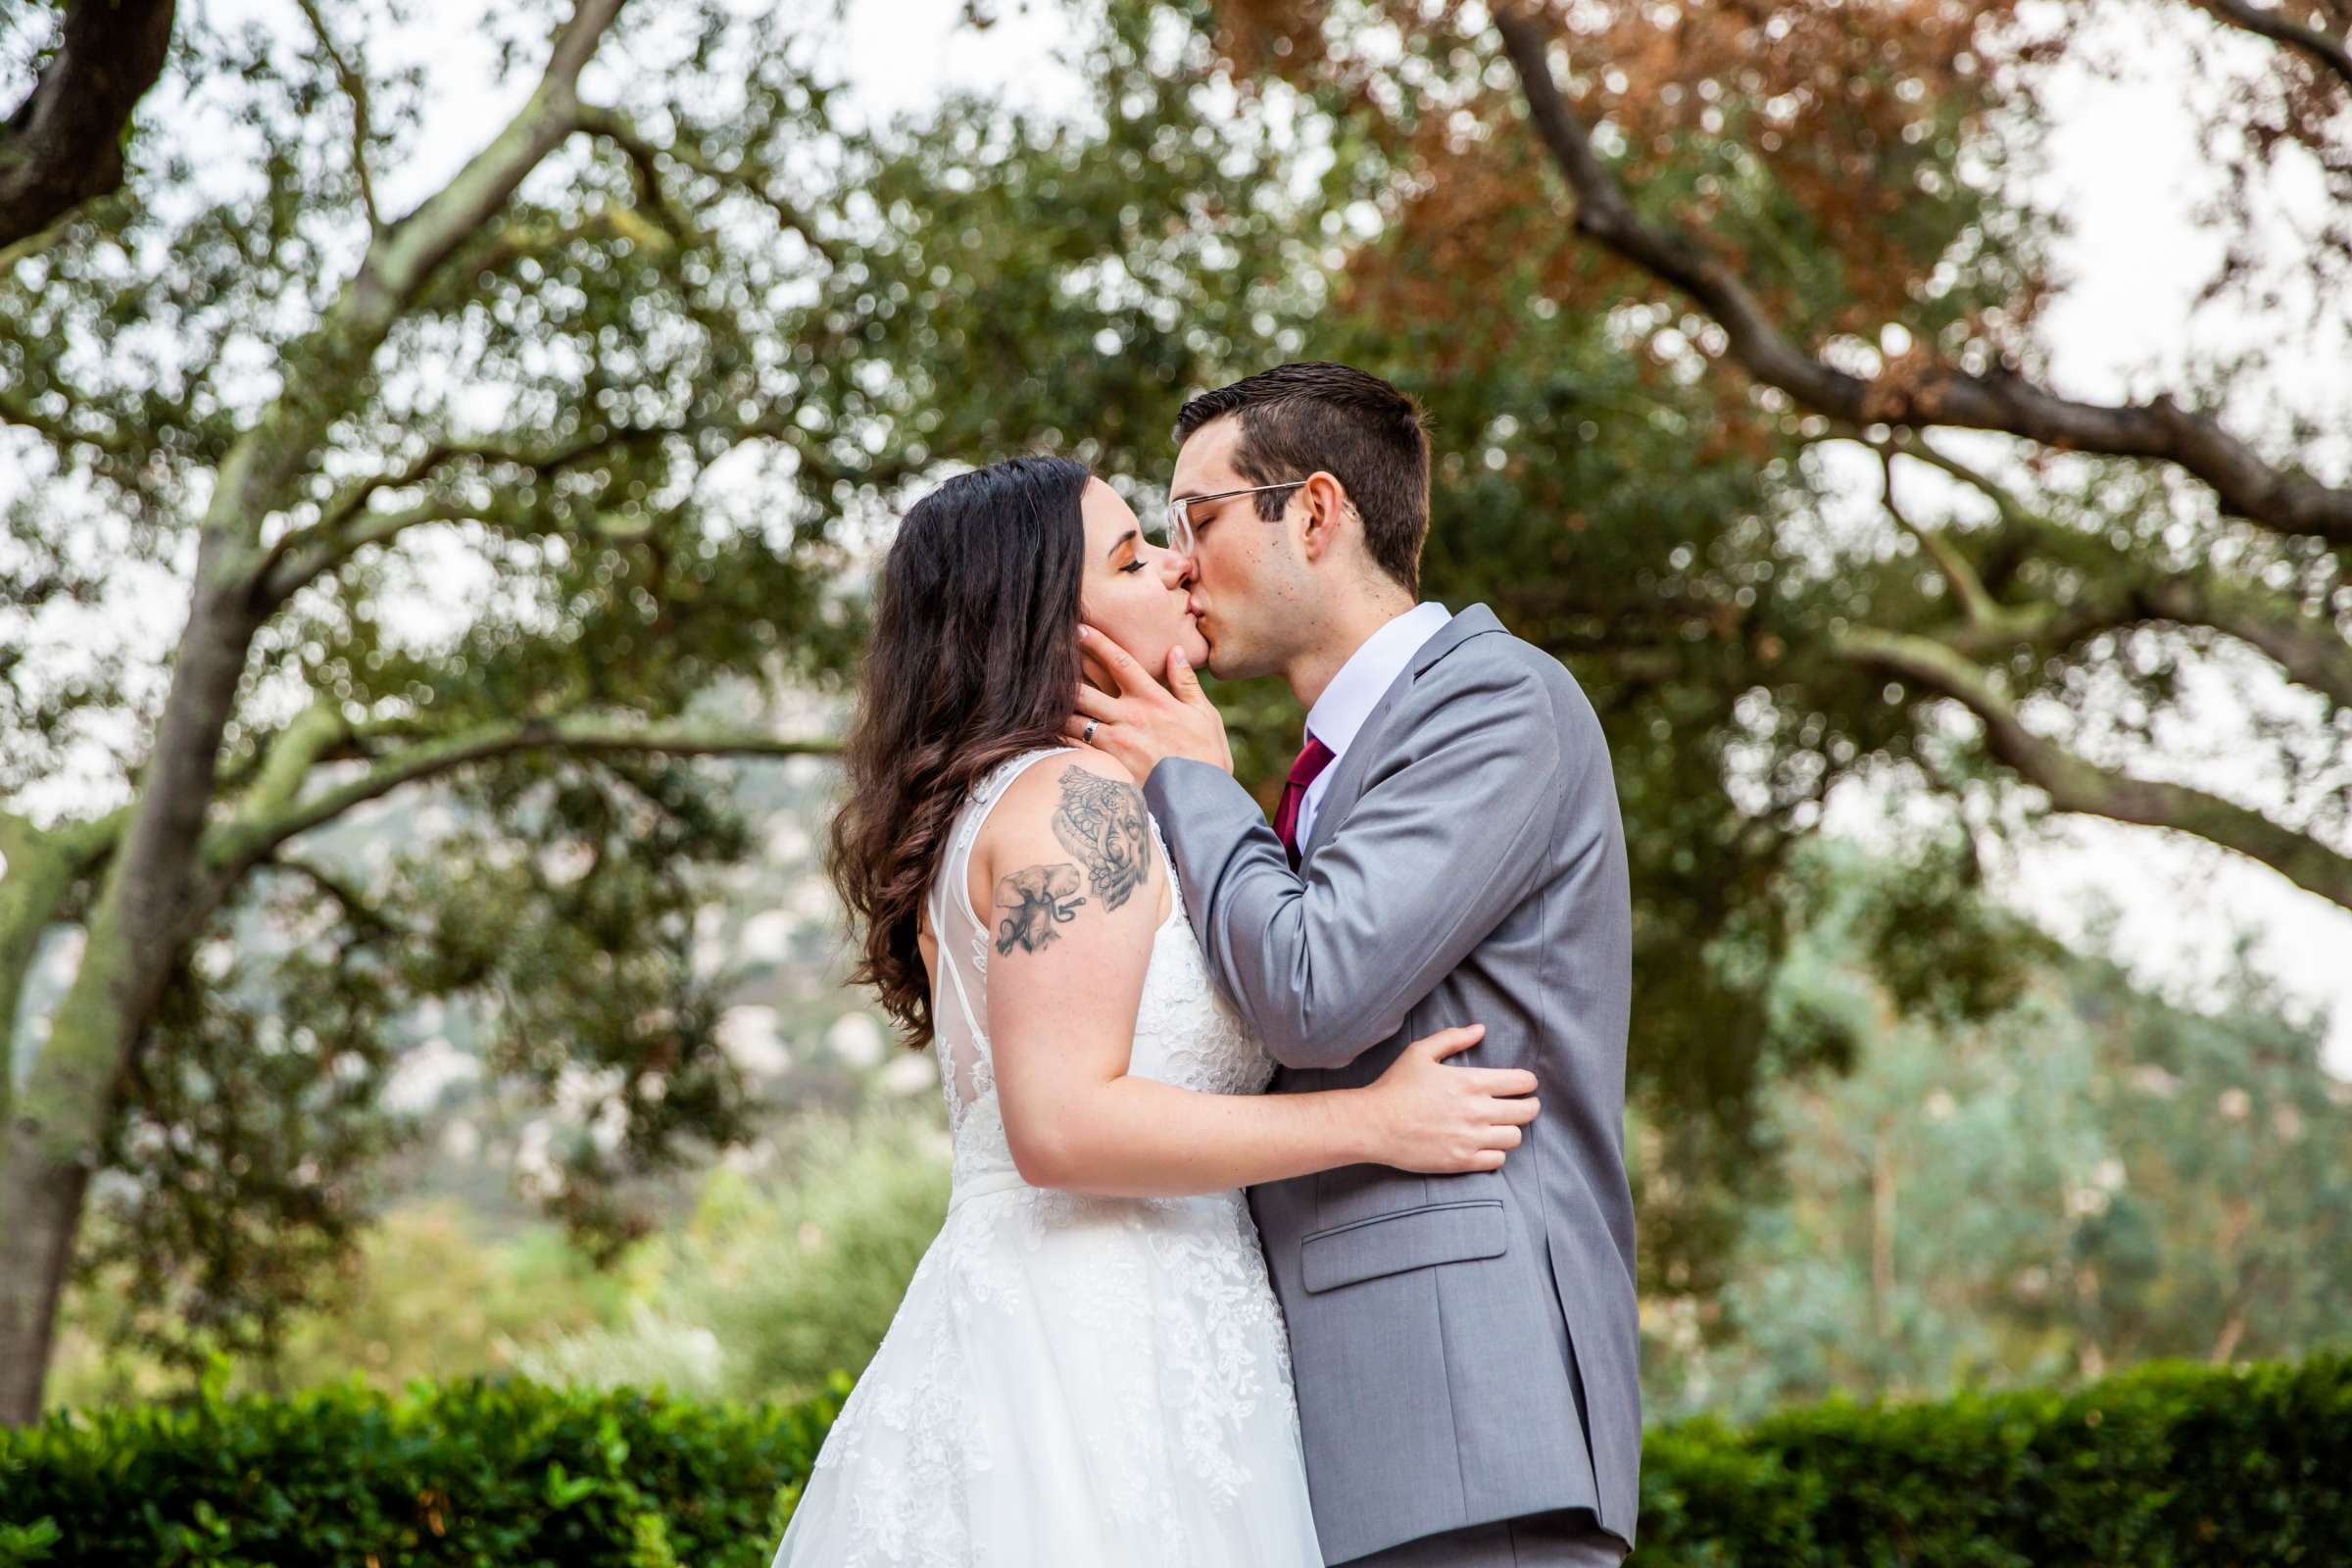 Mt Woodson Castle Wedding, Valerie and Ian Wedding Photo #1 by True Photography